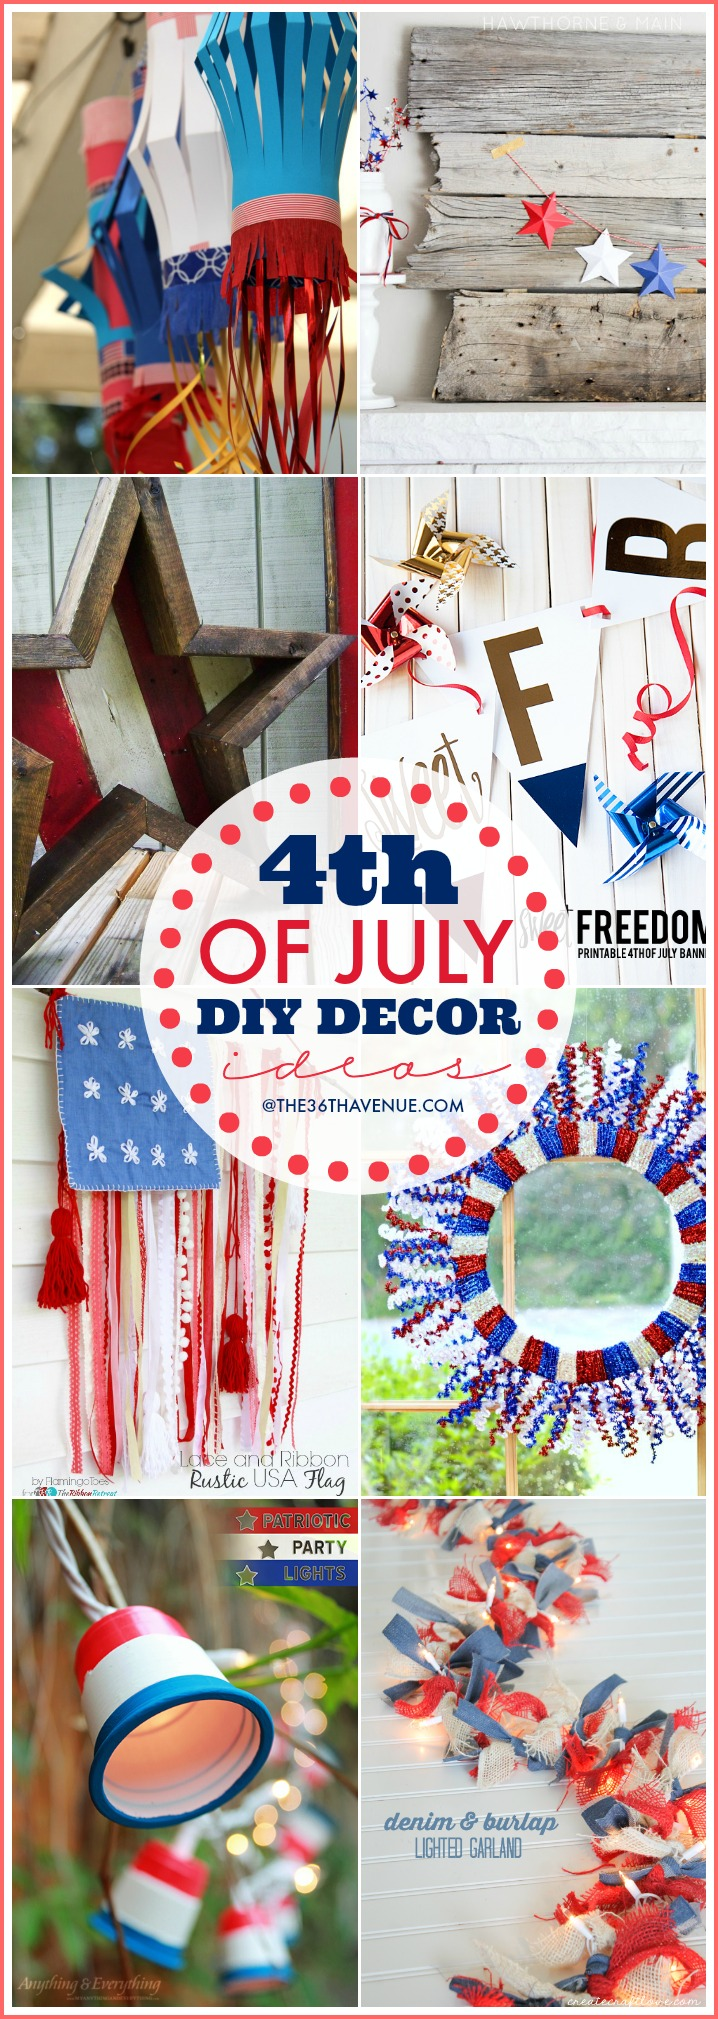 Fourth Of July Decor DIY Ideas at the36thavenue.com